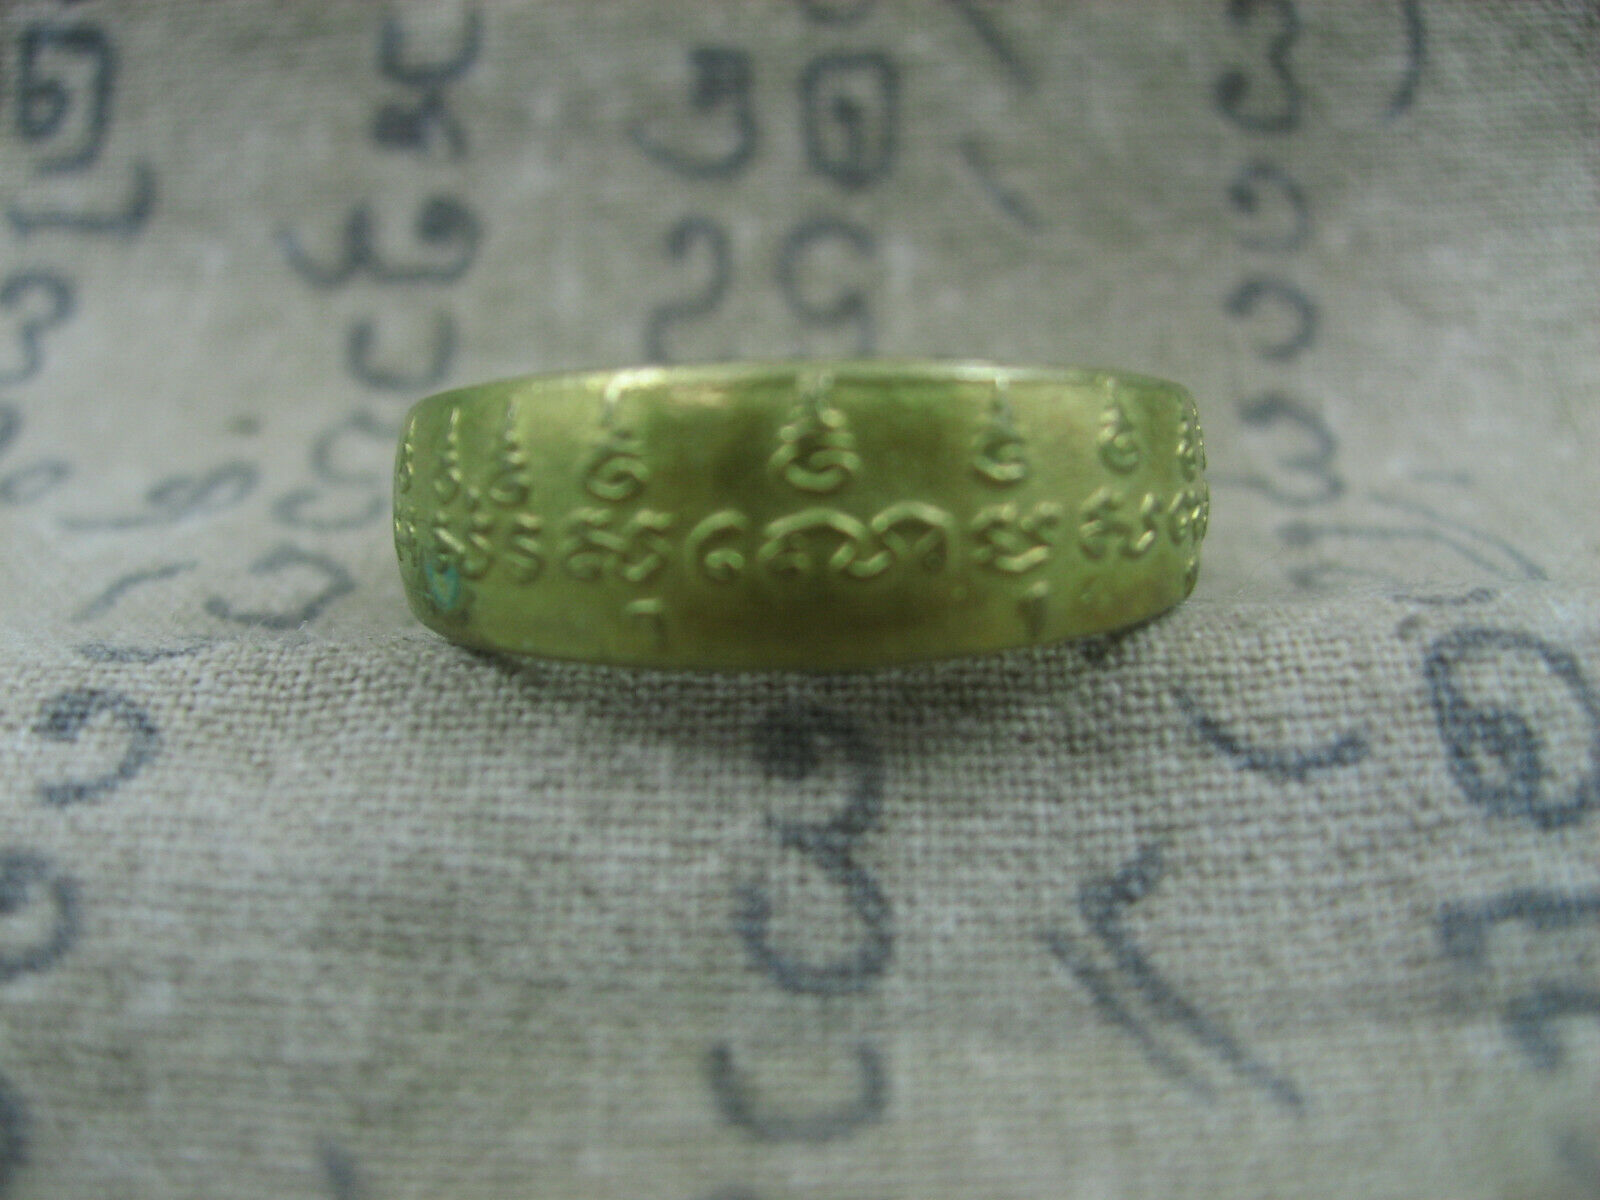 Primary image for HOLY BLESSED HOLY LETTERS YAN MAGIC RING TOP LUCKY POWER RARE THAI BUDDHA AMULET